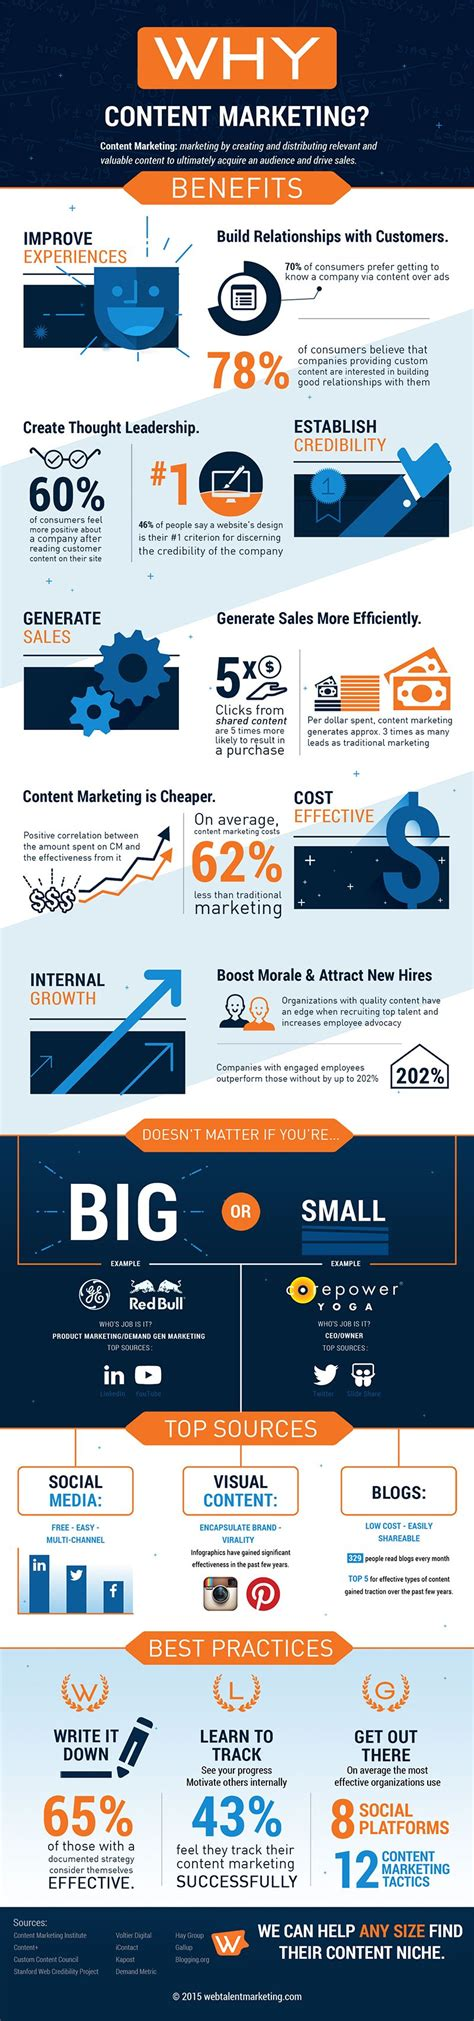 Why Content Marketing? 8 Benefits For Any Size Company